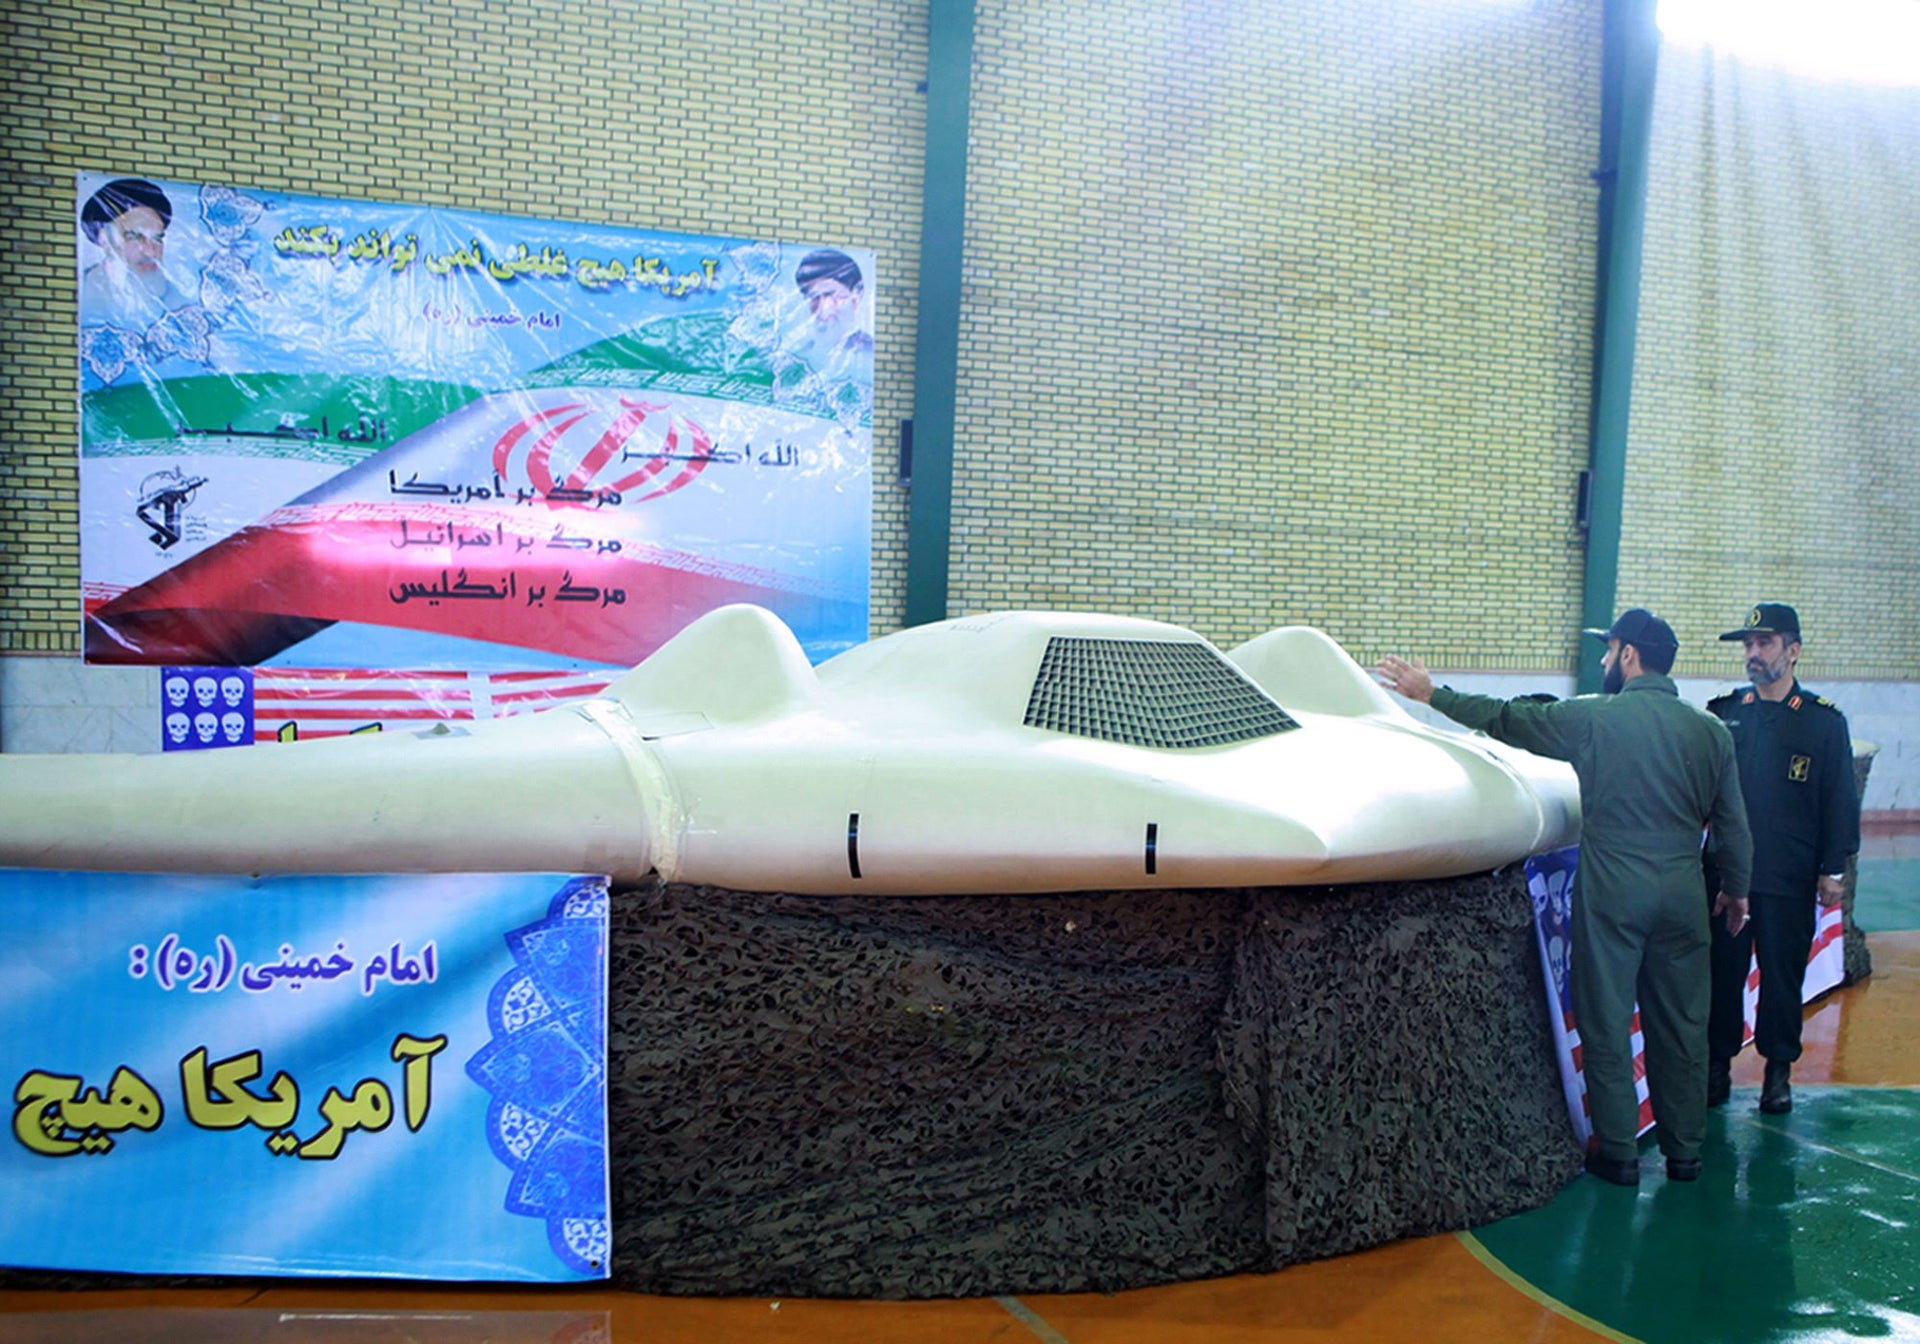 Brigadier General Amir-Ali Hajizadeh looking at what Iranian officials claim is the US RQ-170 Sentinel high-altitude reconnaissance drone that crashed in Iran on December 4, 2011